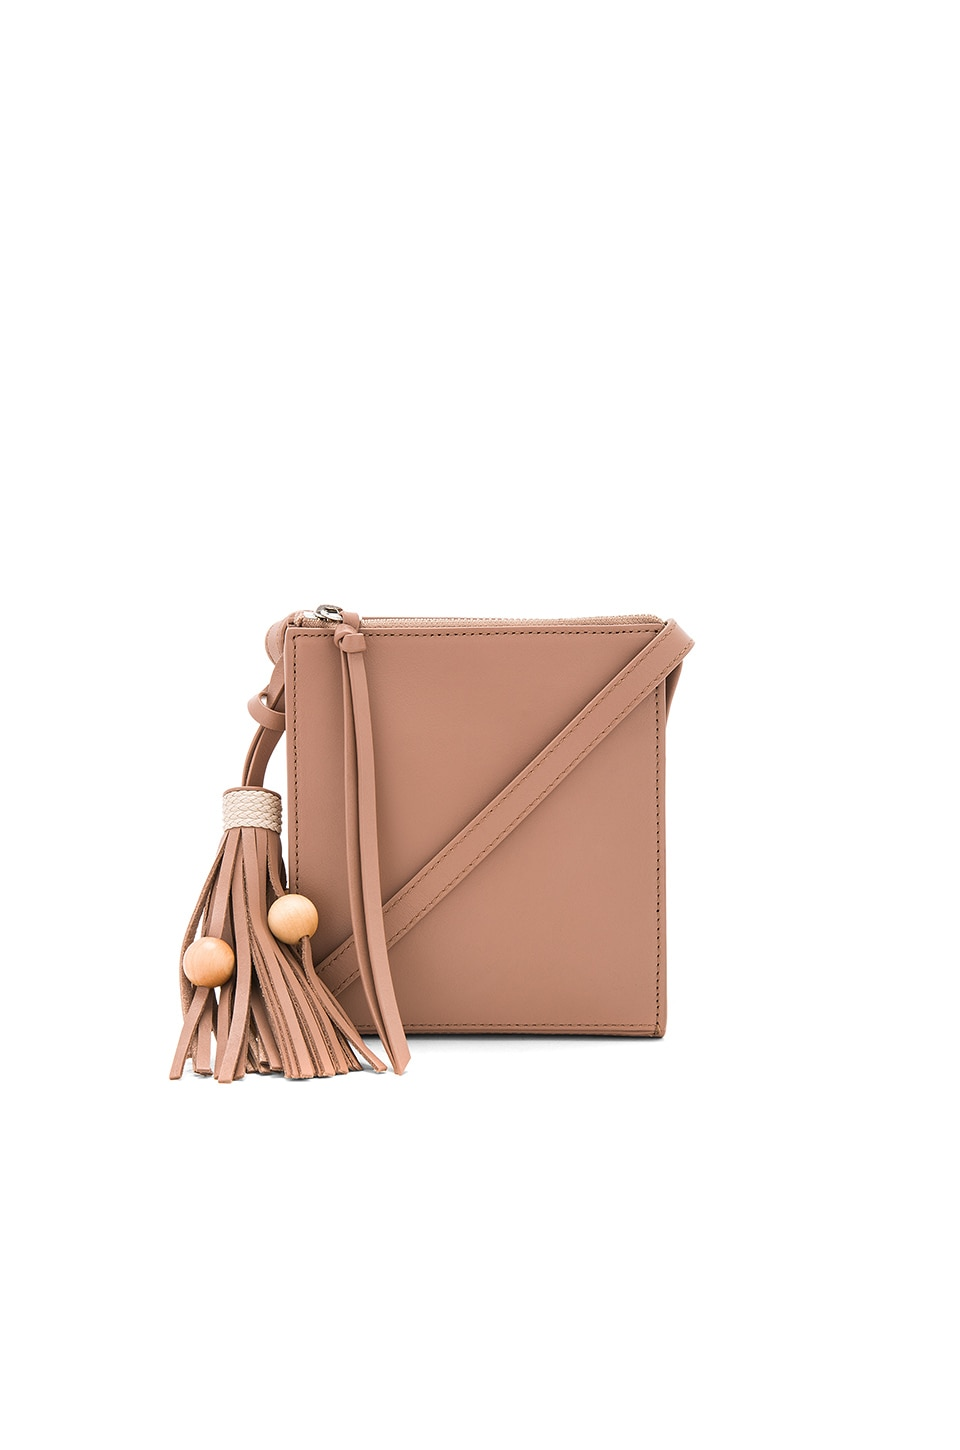 Elizabeth and James Sara Crossbody in Light Luggage